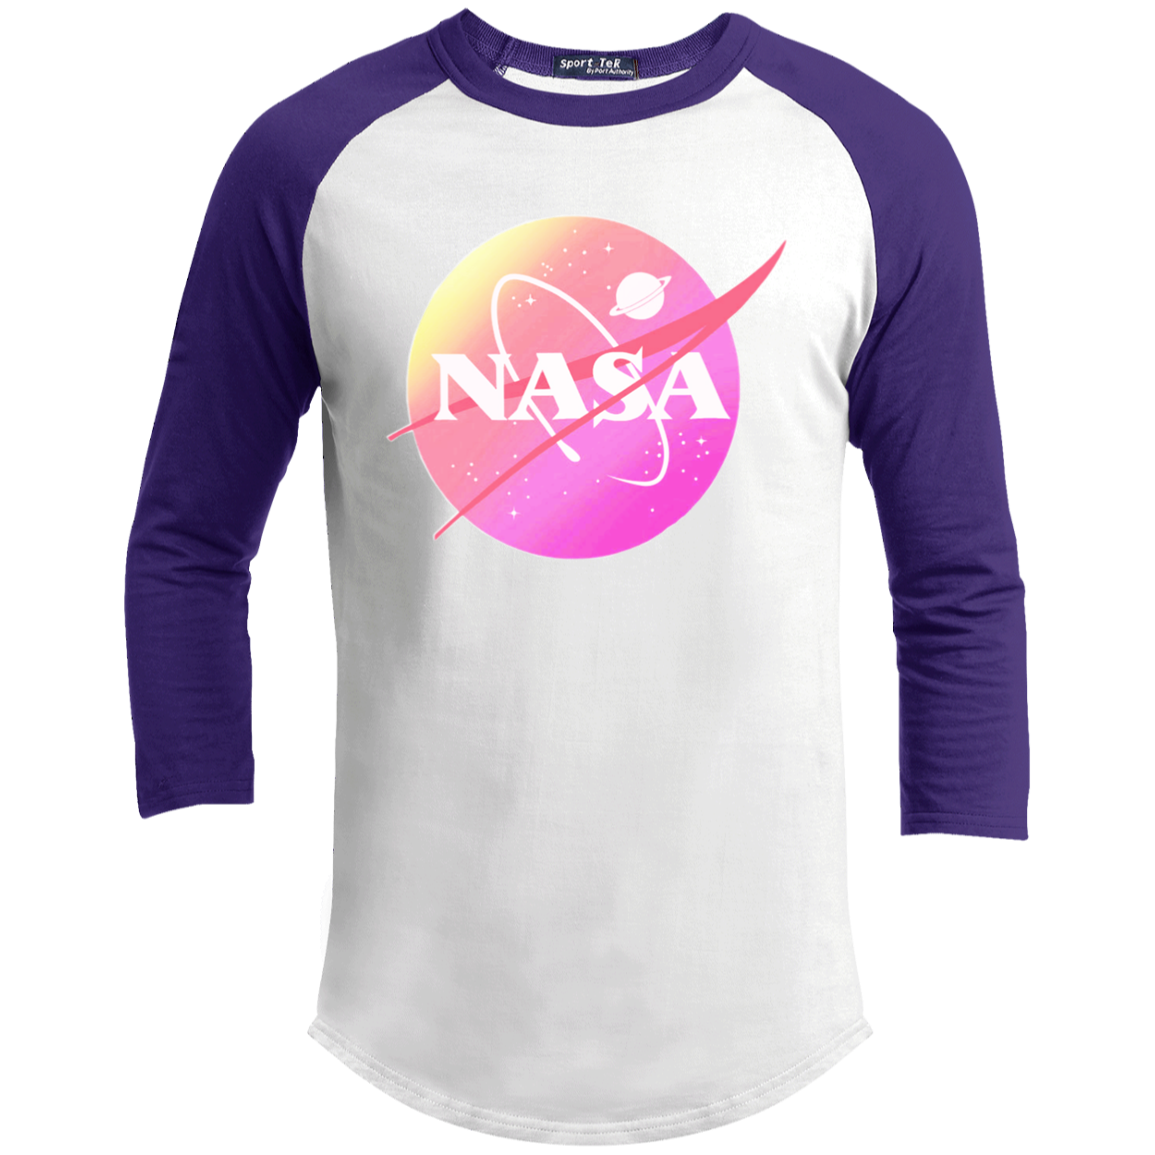 Youth Nasa Pink